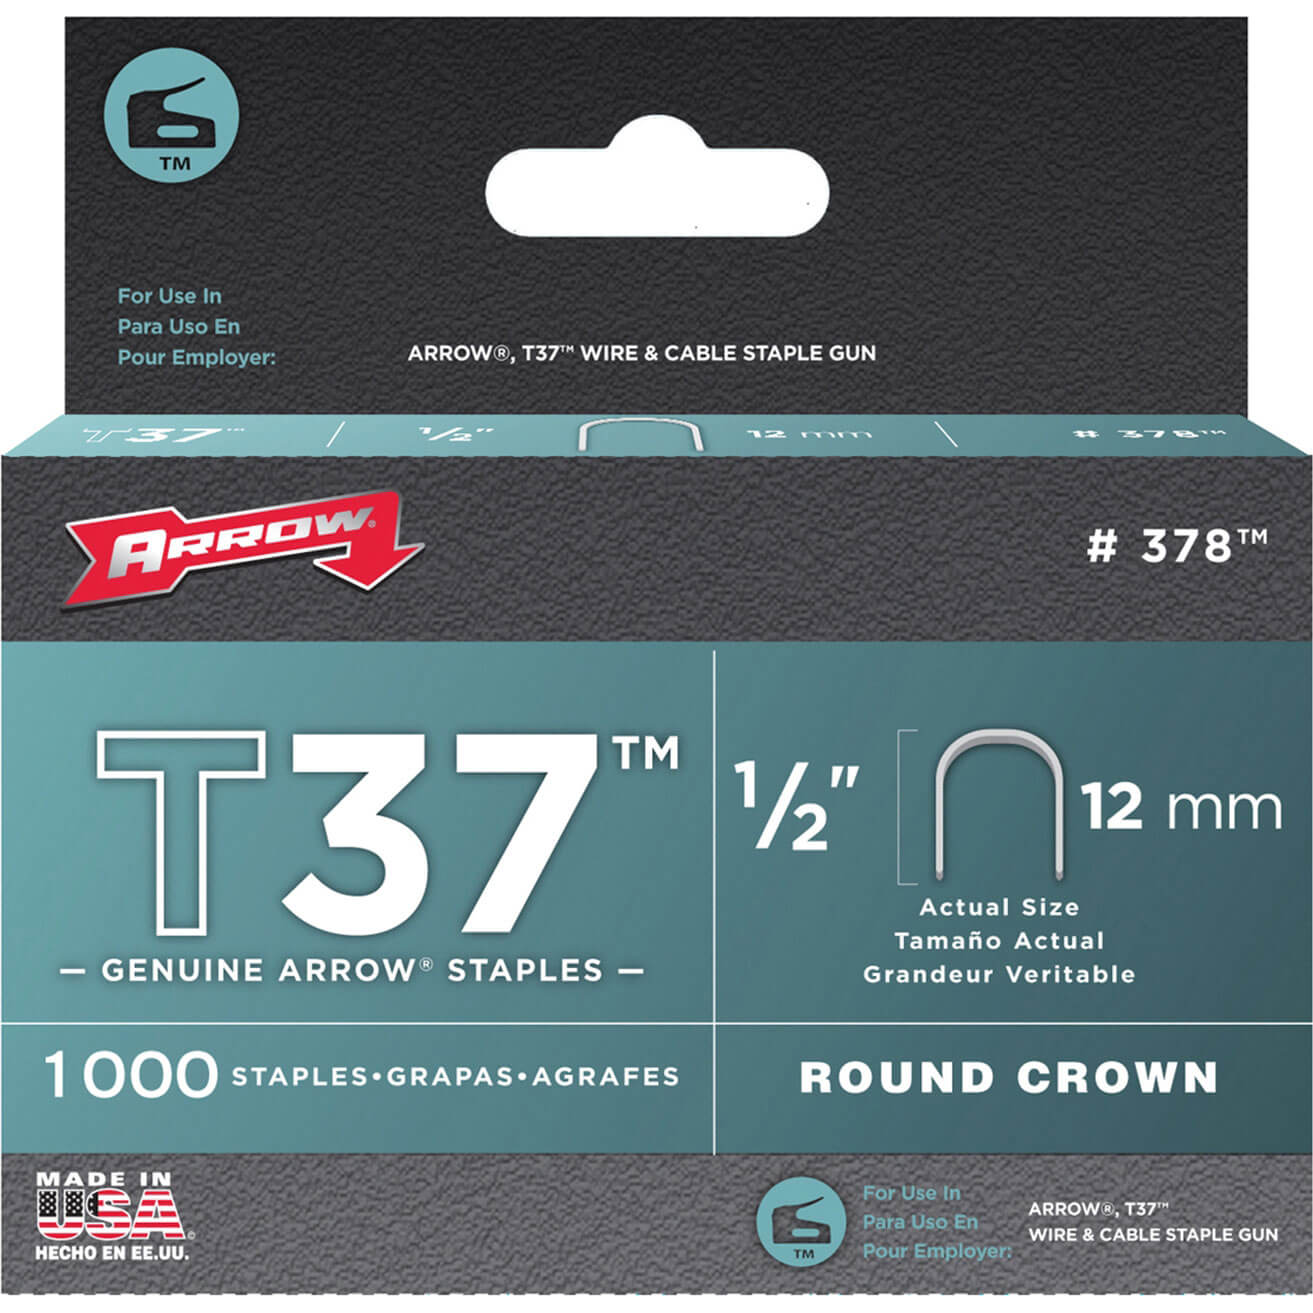 Arrow T37 Round Crown Staples 12mm Pack of 1000